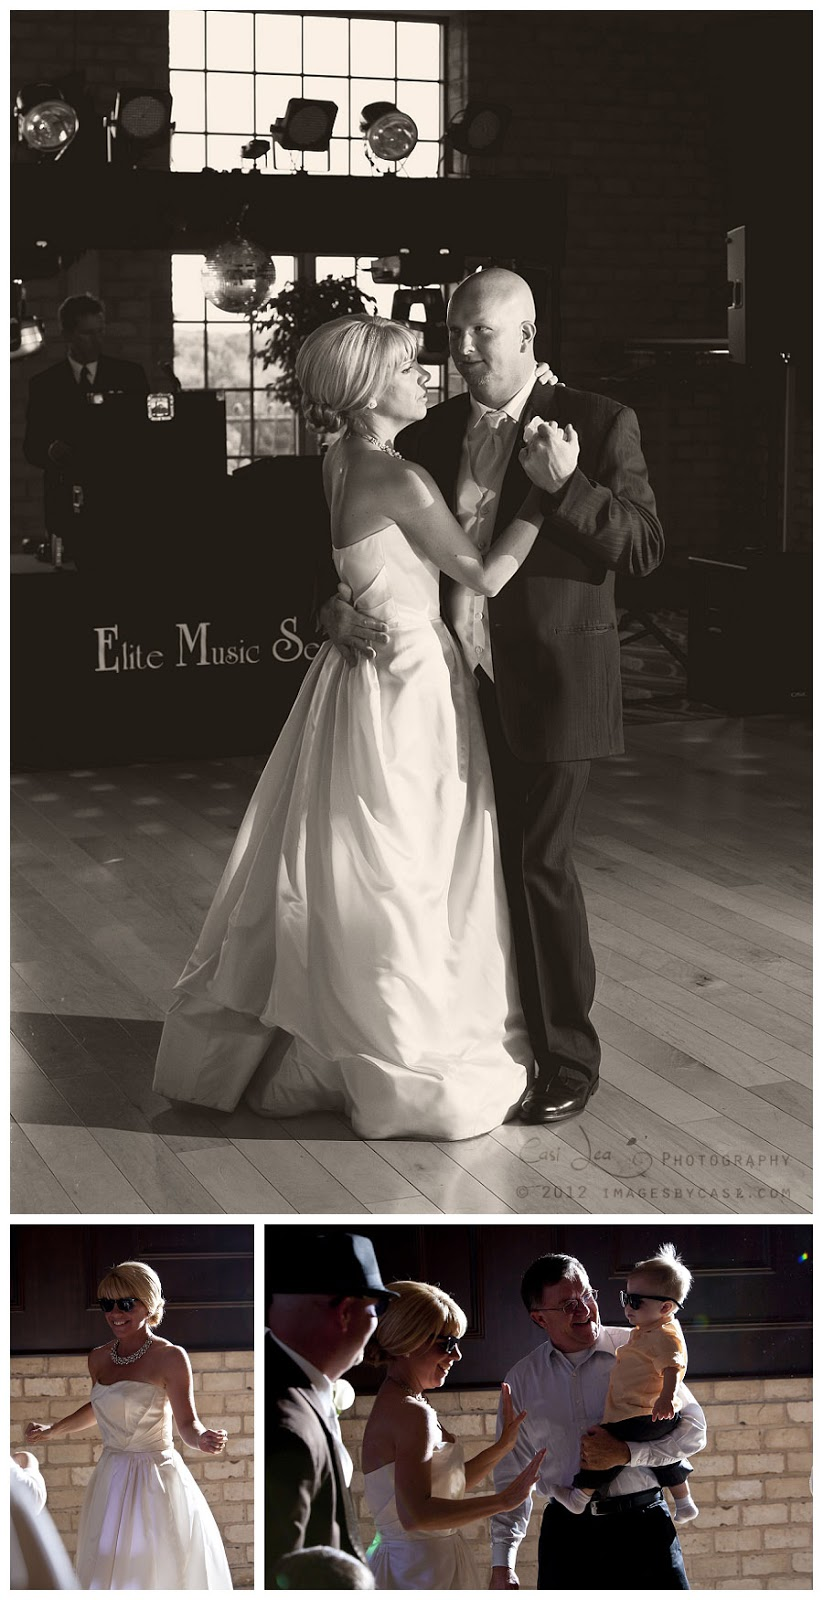 Music by Elite Music Service and photos by green bay wedding photographer Casi Lea Photography